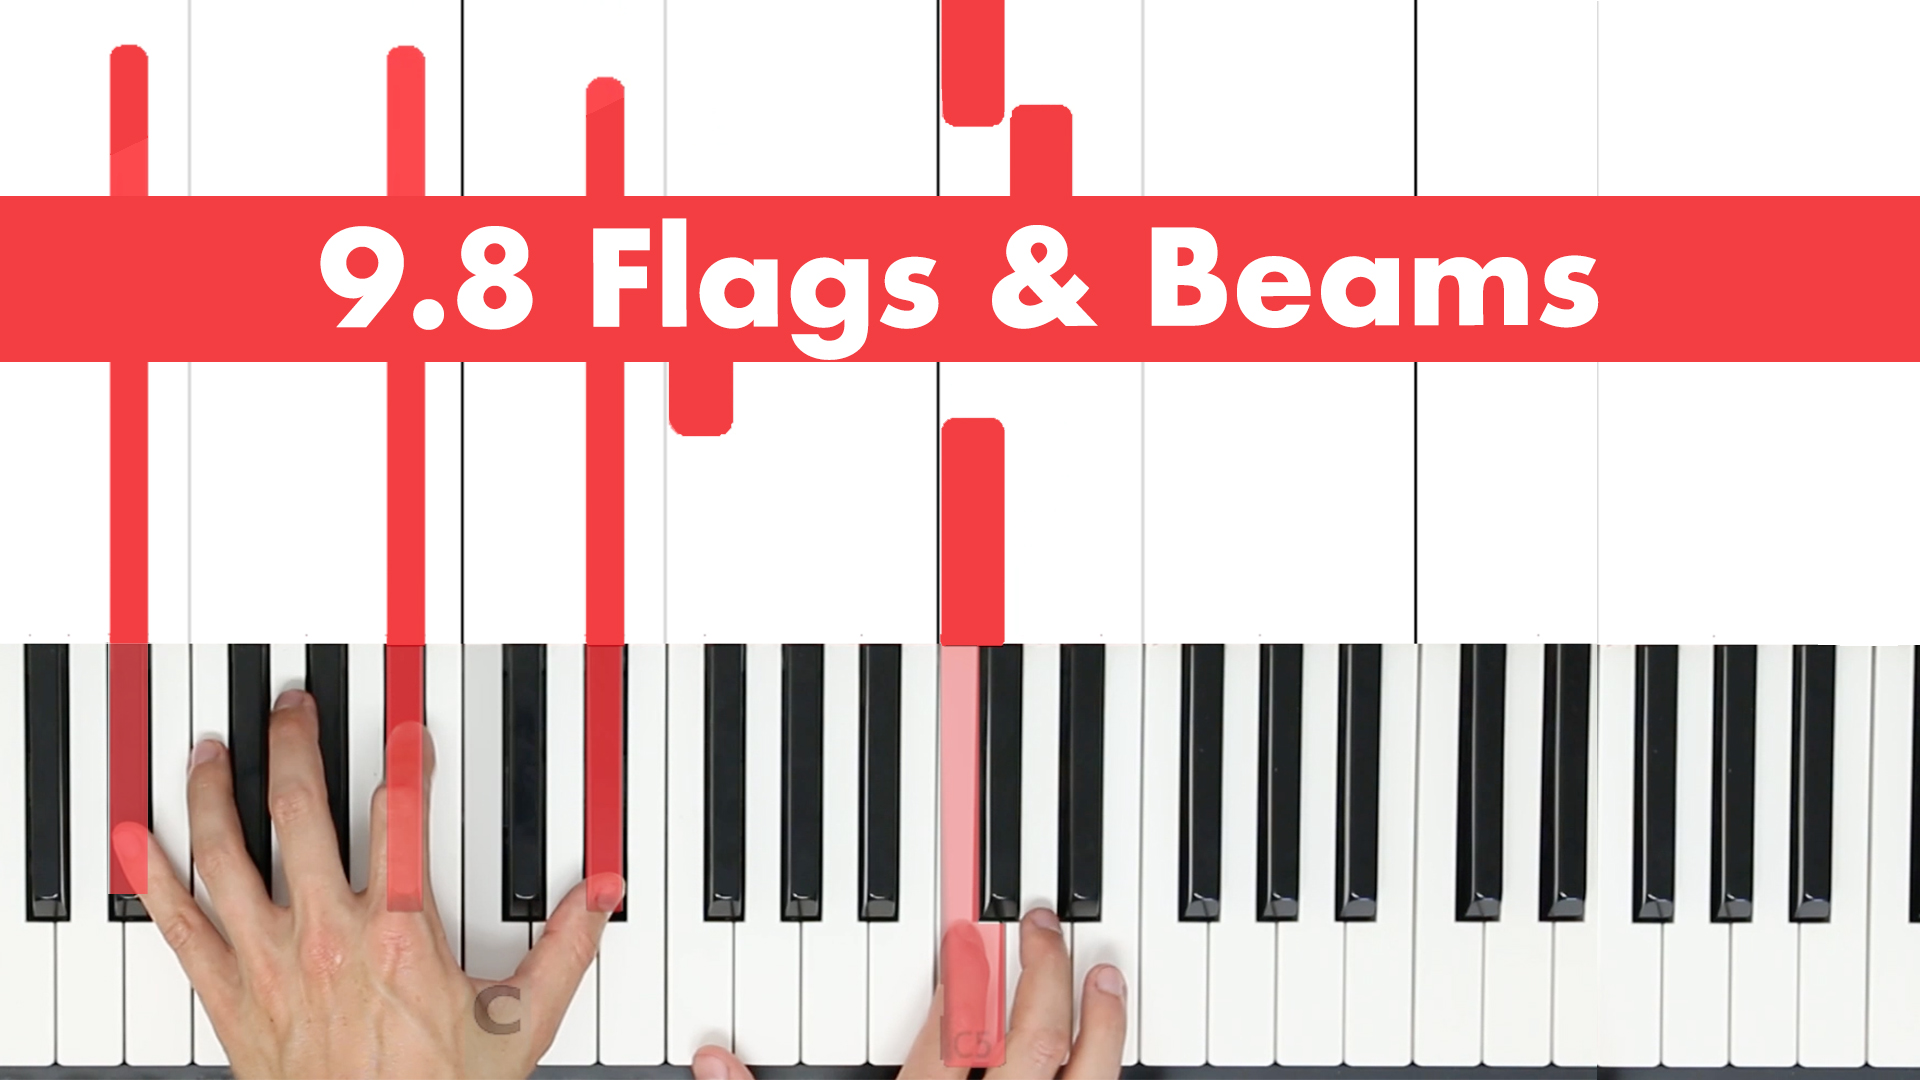 9.8 Flags & Beams